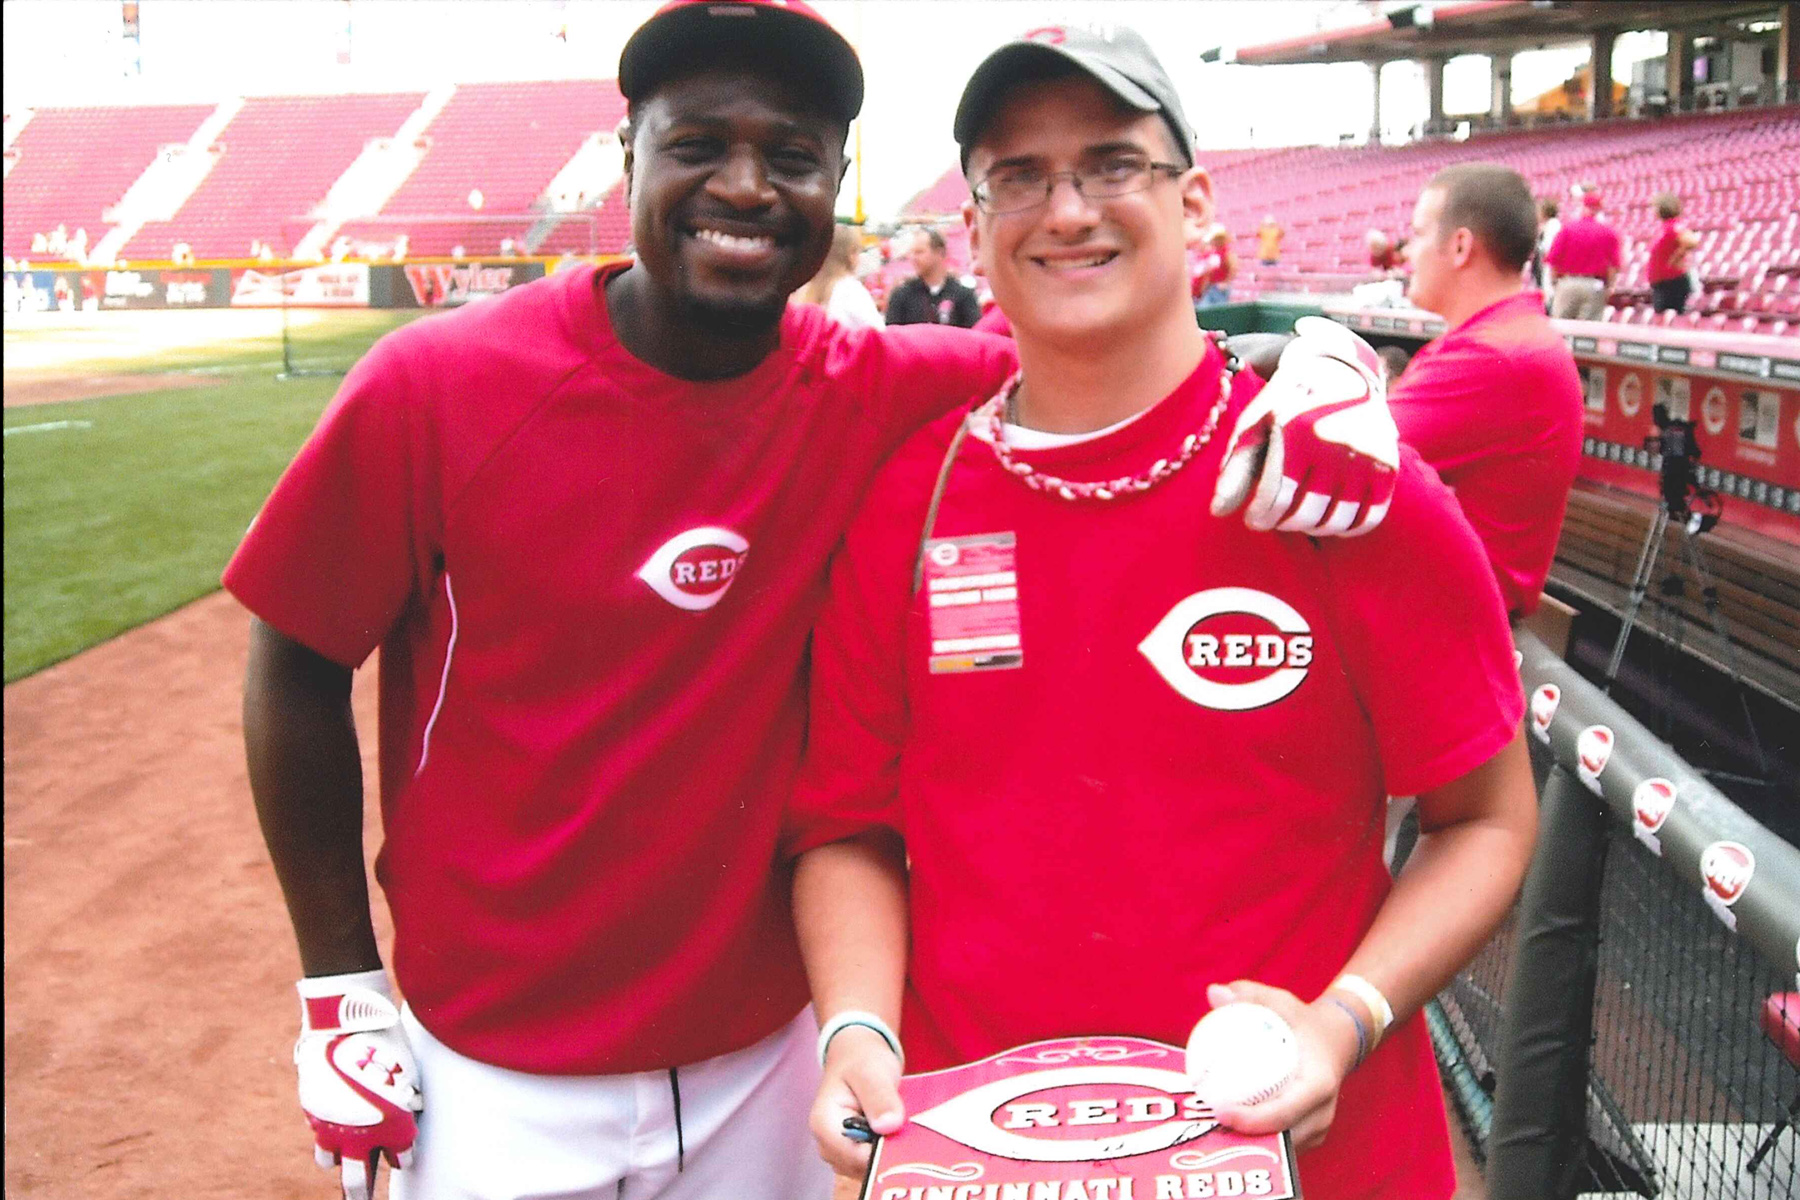 brandon-phillips-cincy-reds-1-20130702-1969103880.jpg